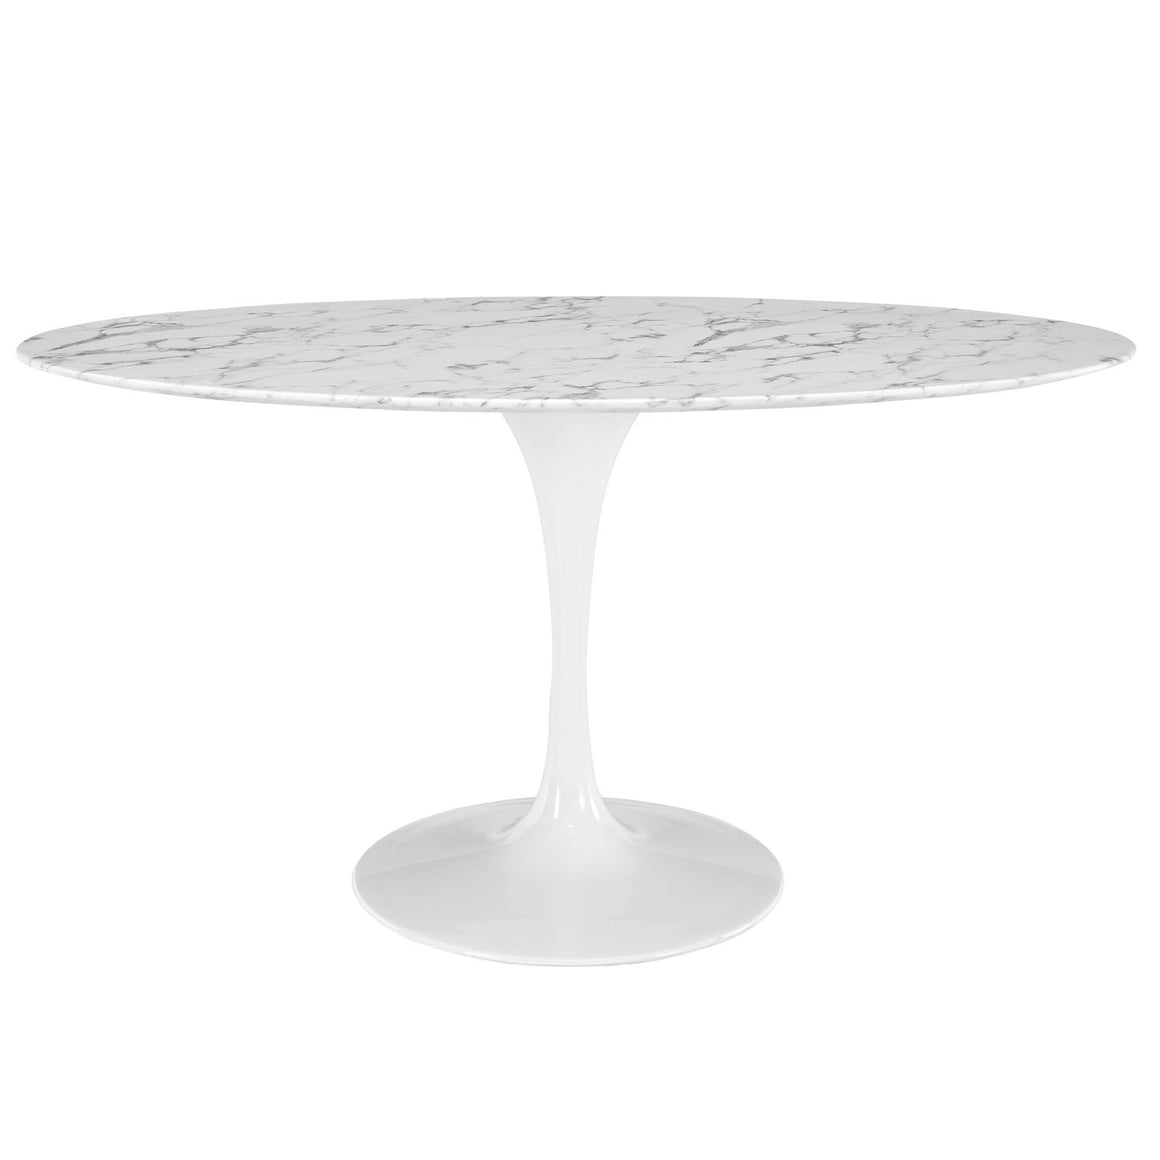 "Lippa 60"" Oval-Shaped Artificial Marble Dining Table"